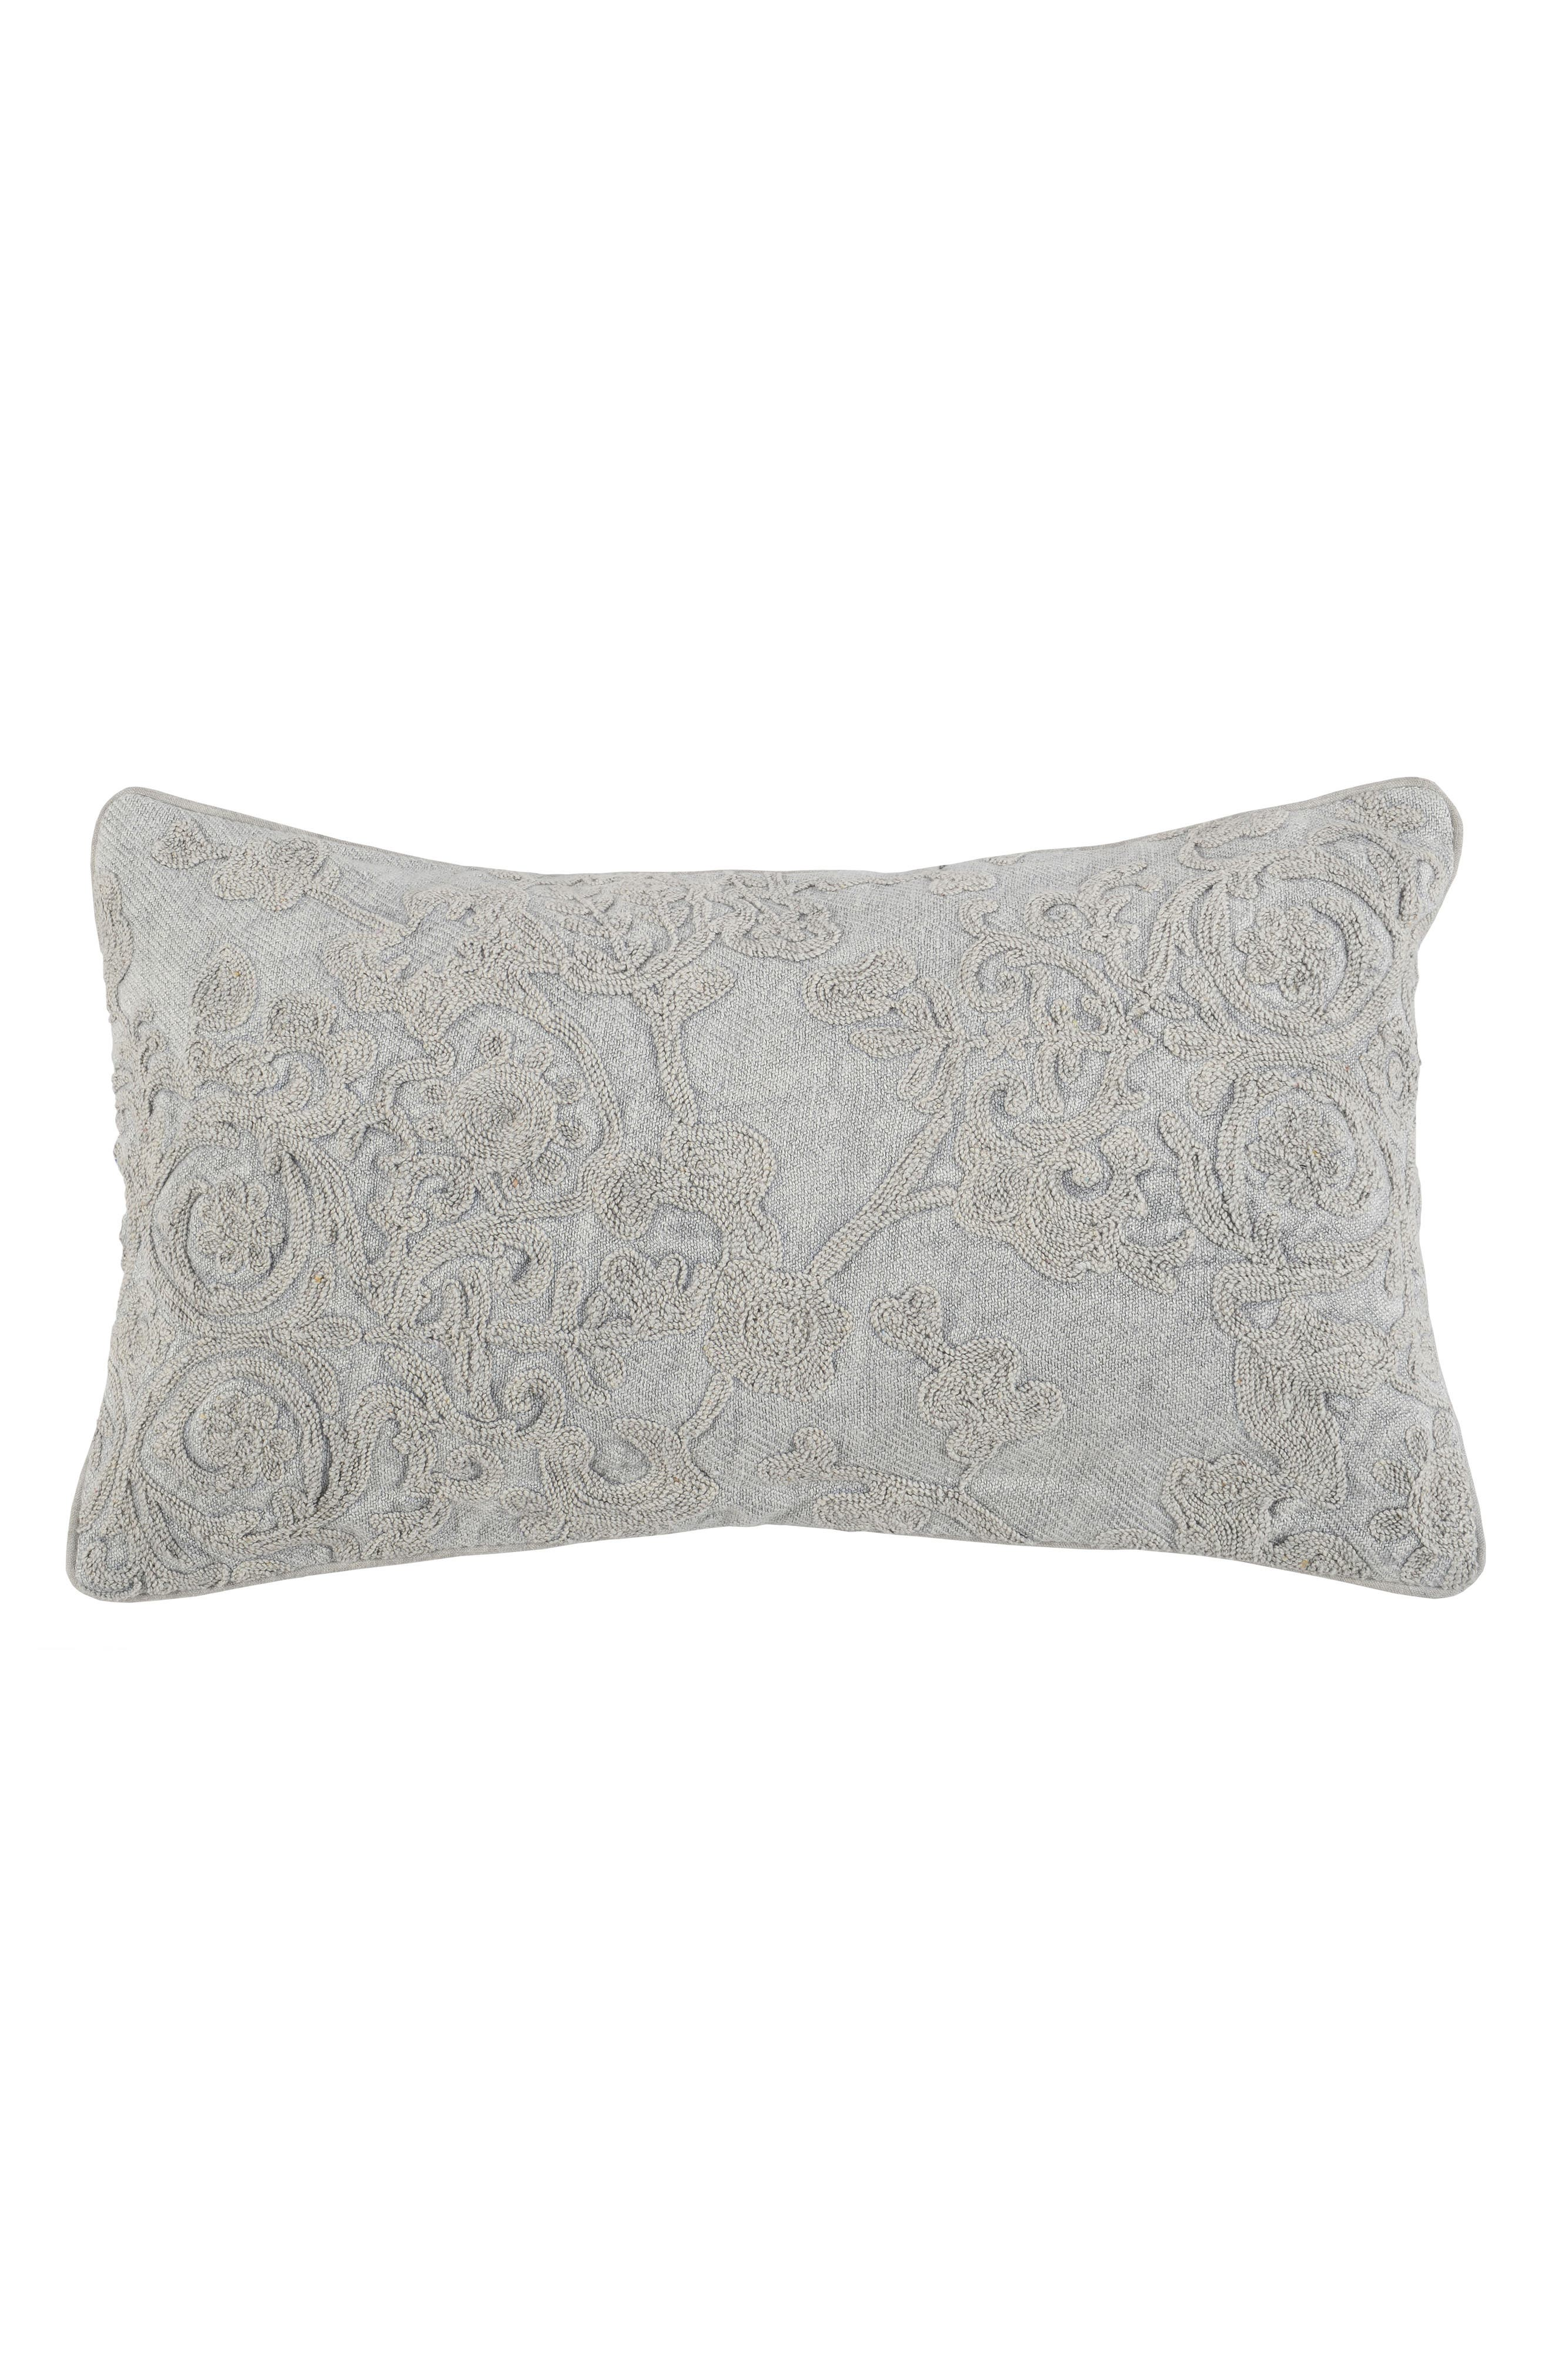 Solandra Embroidered Accent Pillow,                             Main thumbnail 1, color,                             GRAY